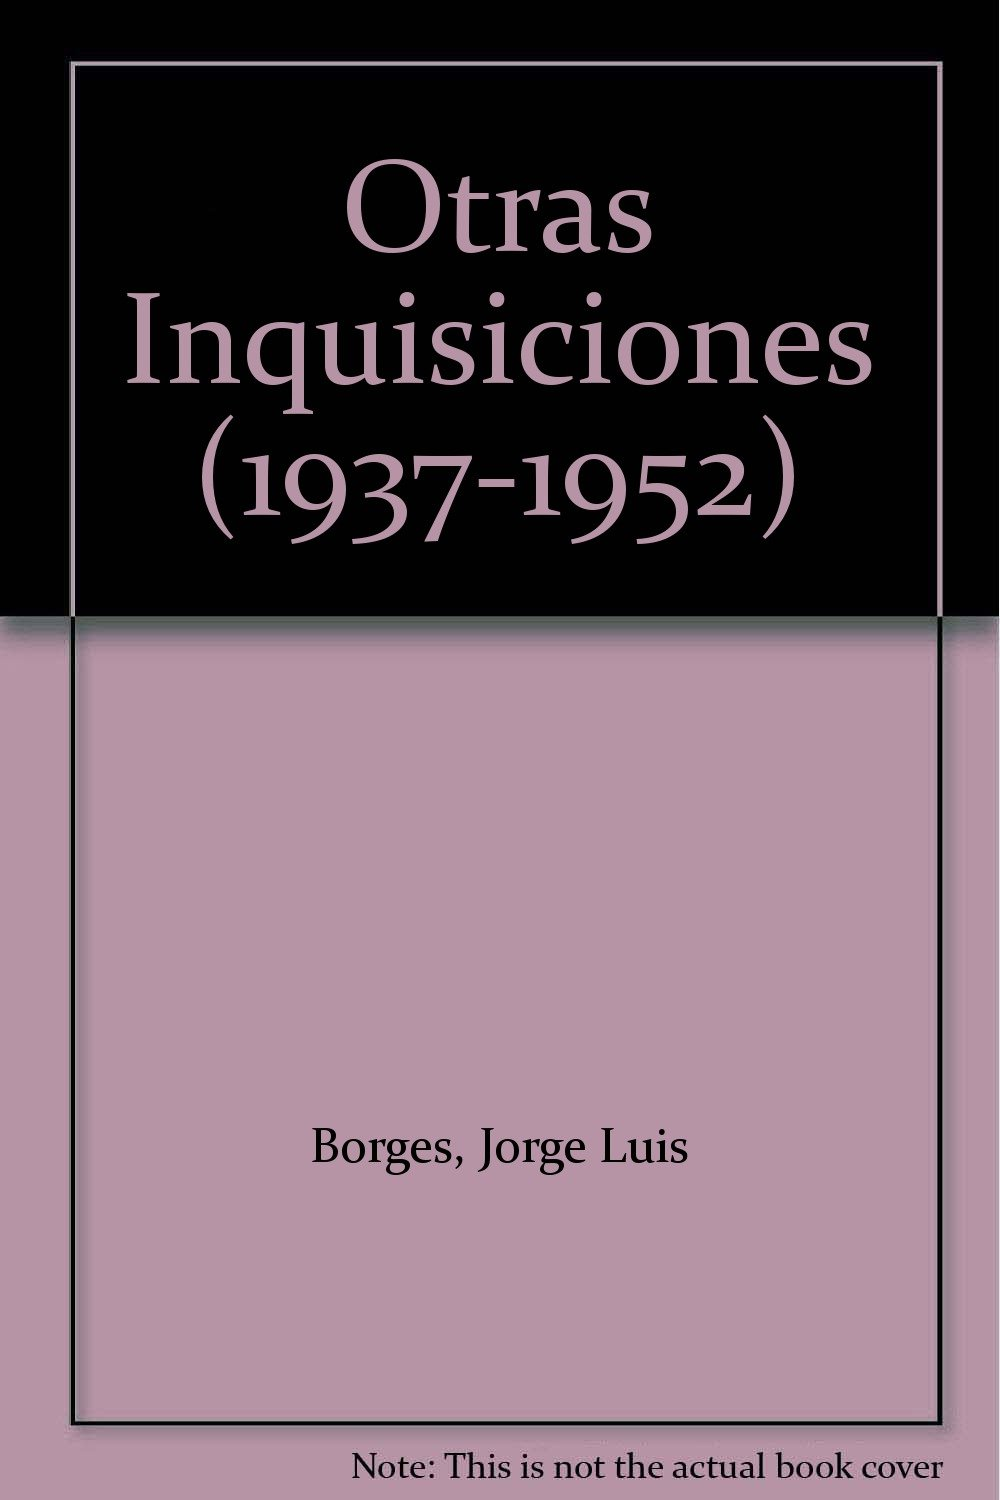 Otras Inquisiciones (1937-1952): Jorge Luis Borges: Amazon ...